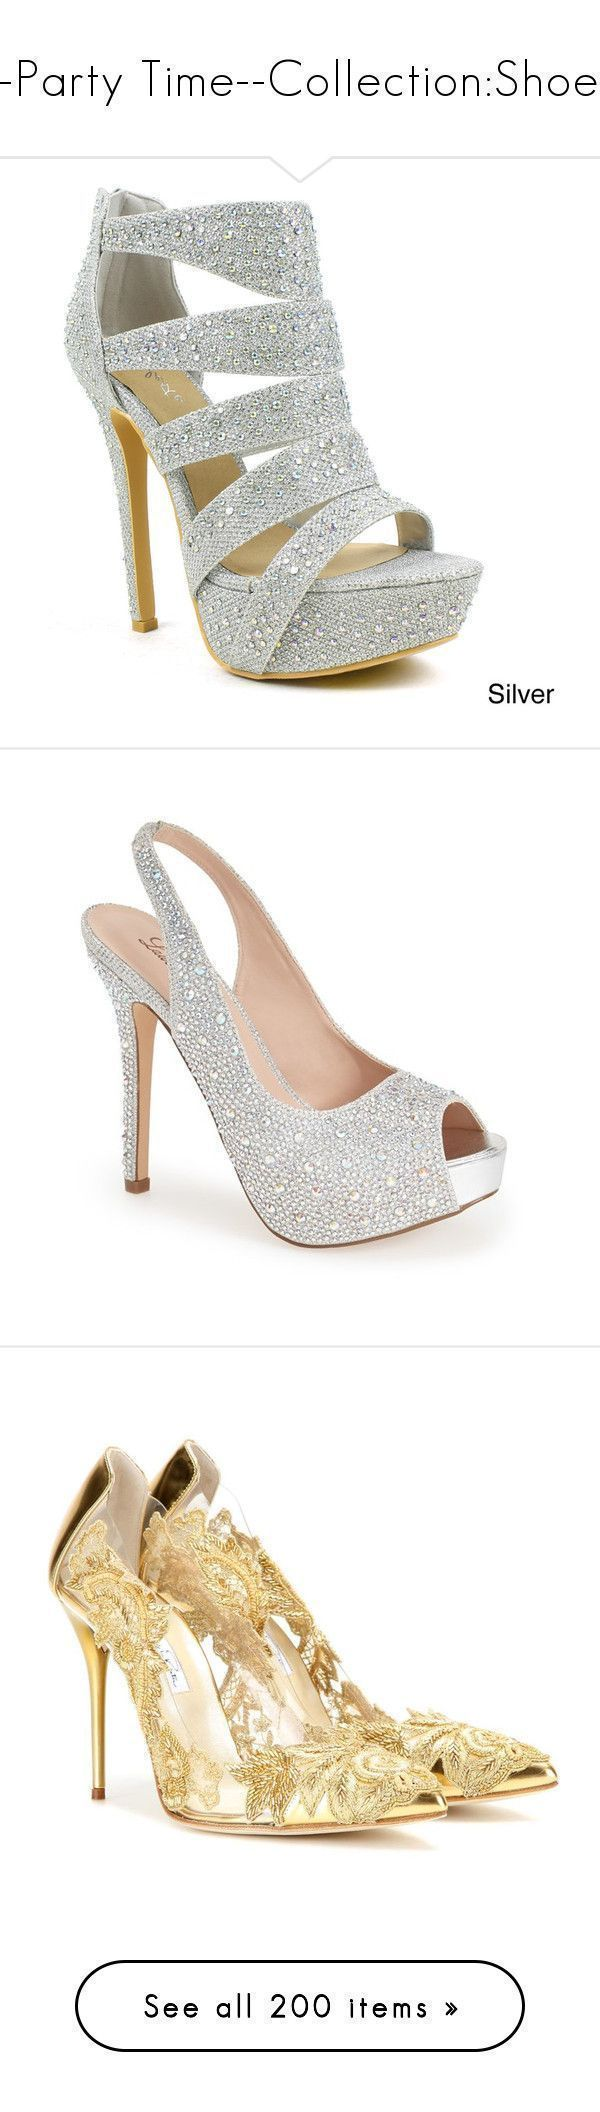 """""""--Party Time--Collection:Shoes"""" by sabristyles22 ❤ liked on Polyvore featuring shoes, pumps, heels, sandals, silver, rhinestone heel pumps, platform pumps, glitter pumps, prom shoes and dress pumps #promshoespumps #platformpumpsglitter"""